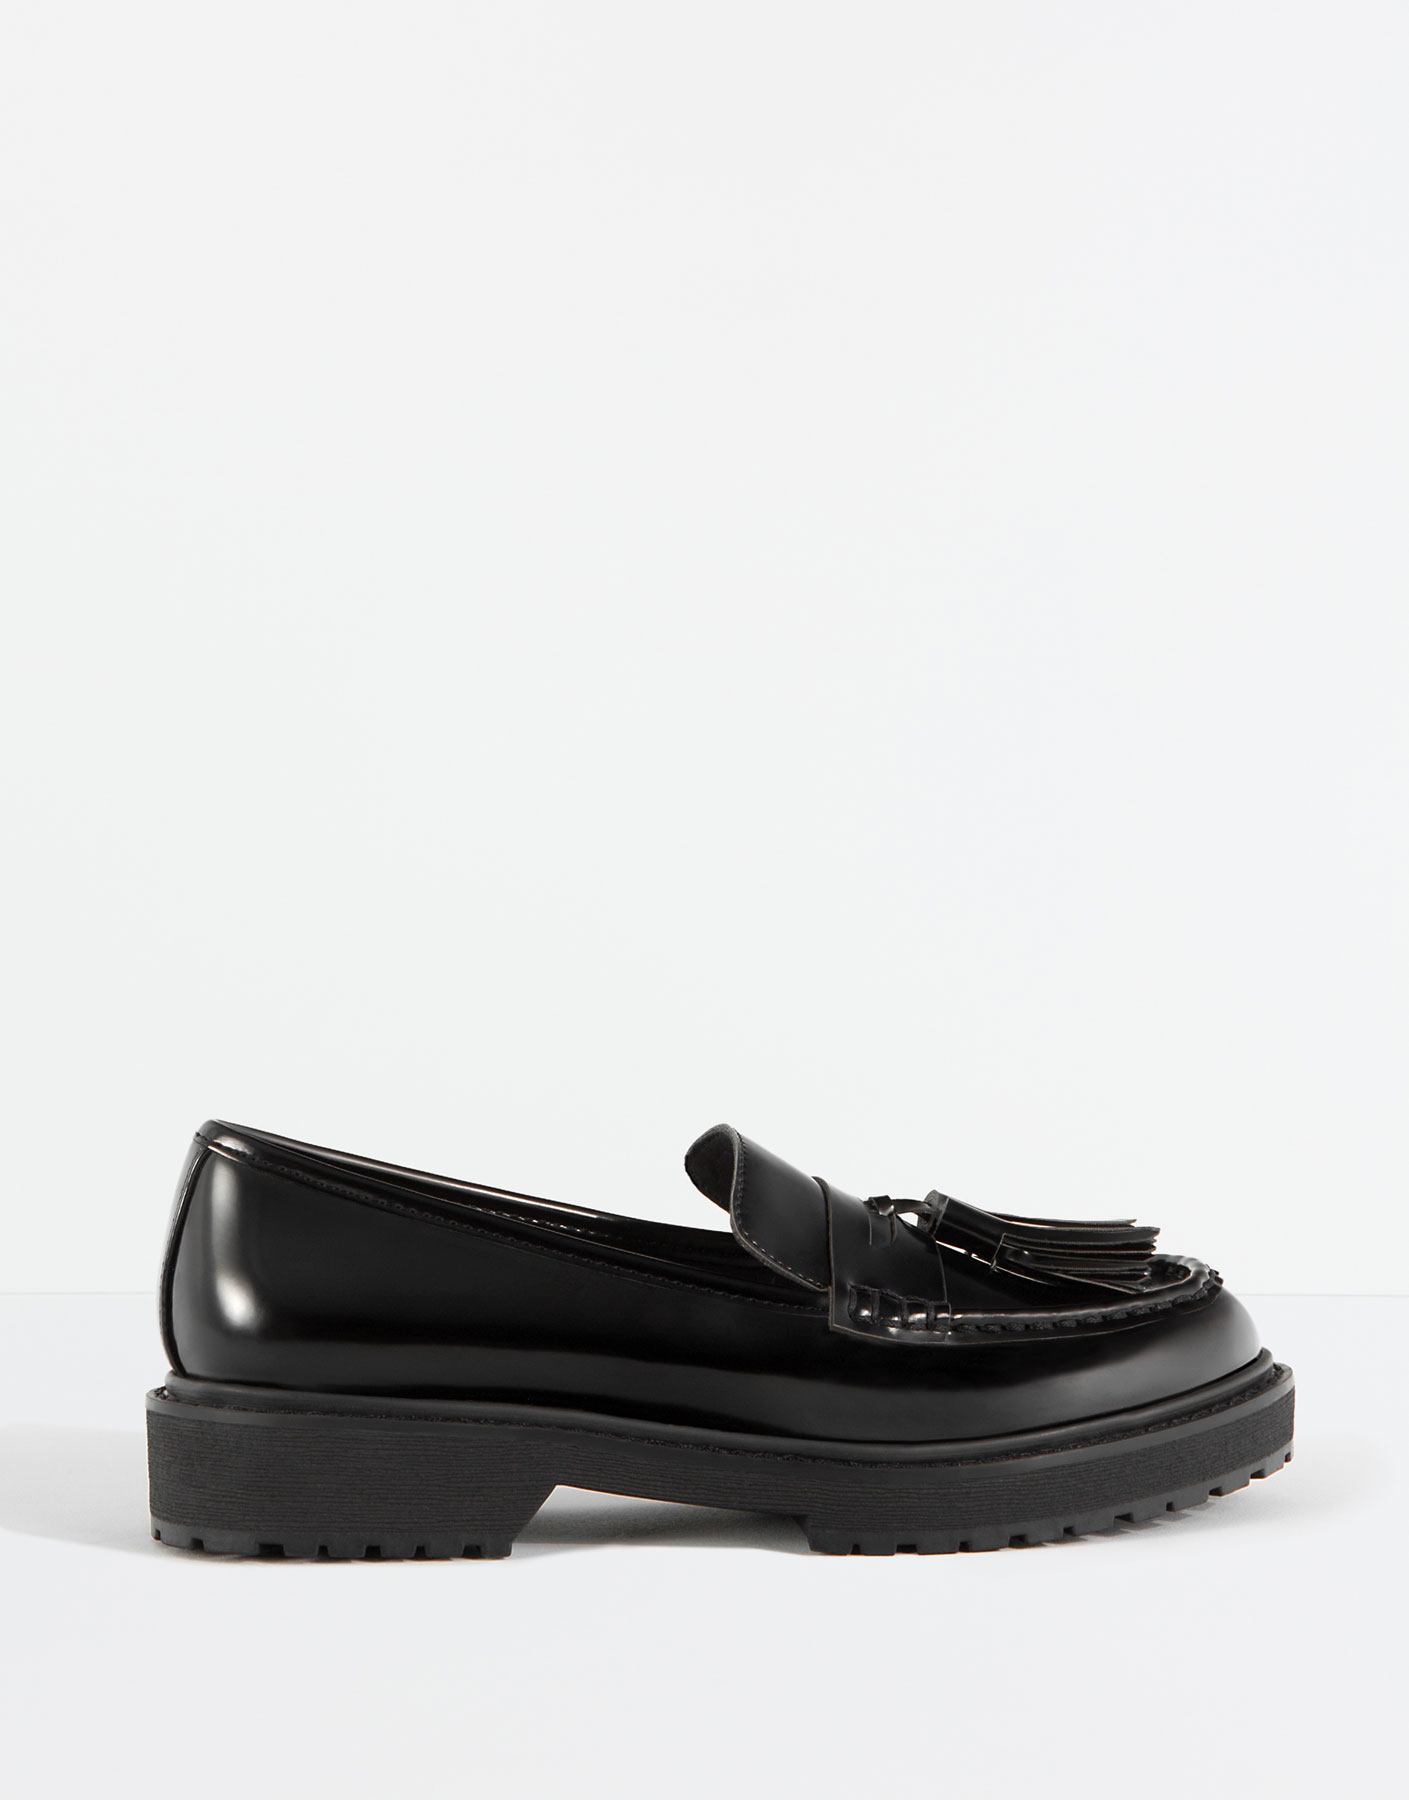 Loafer borles